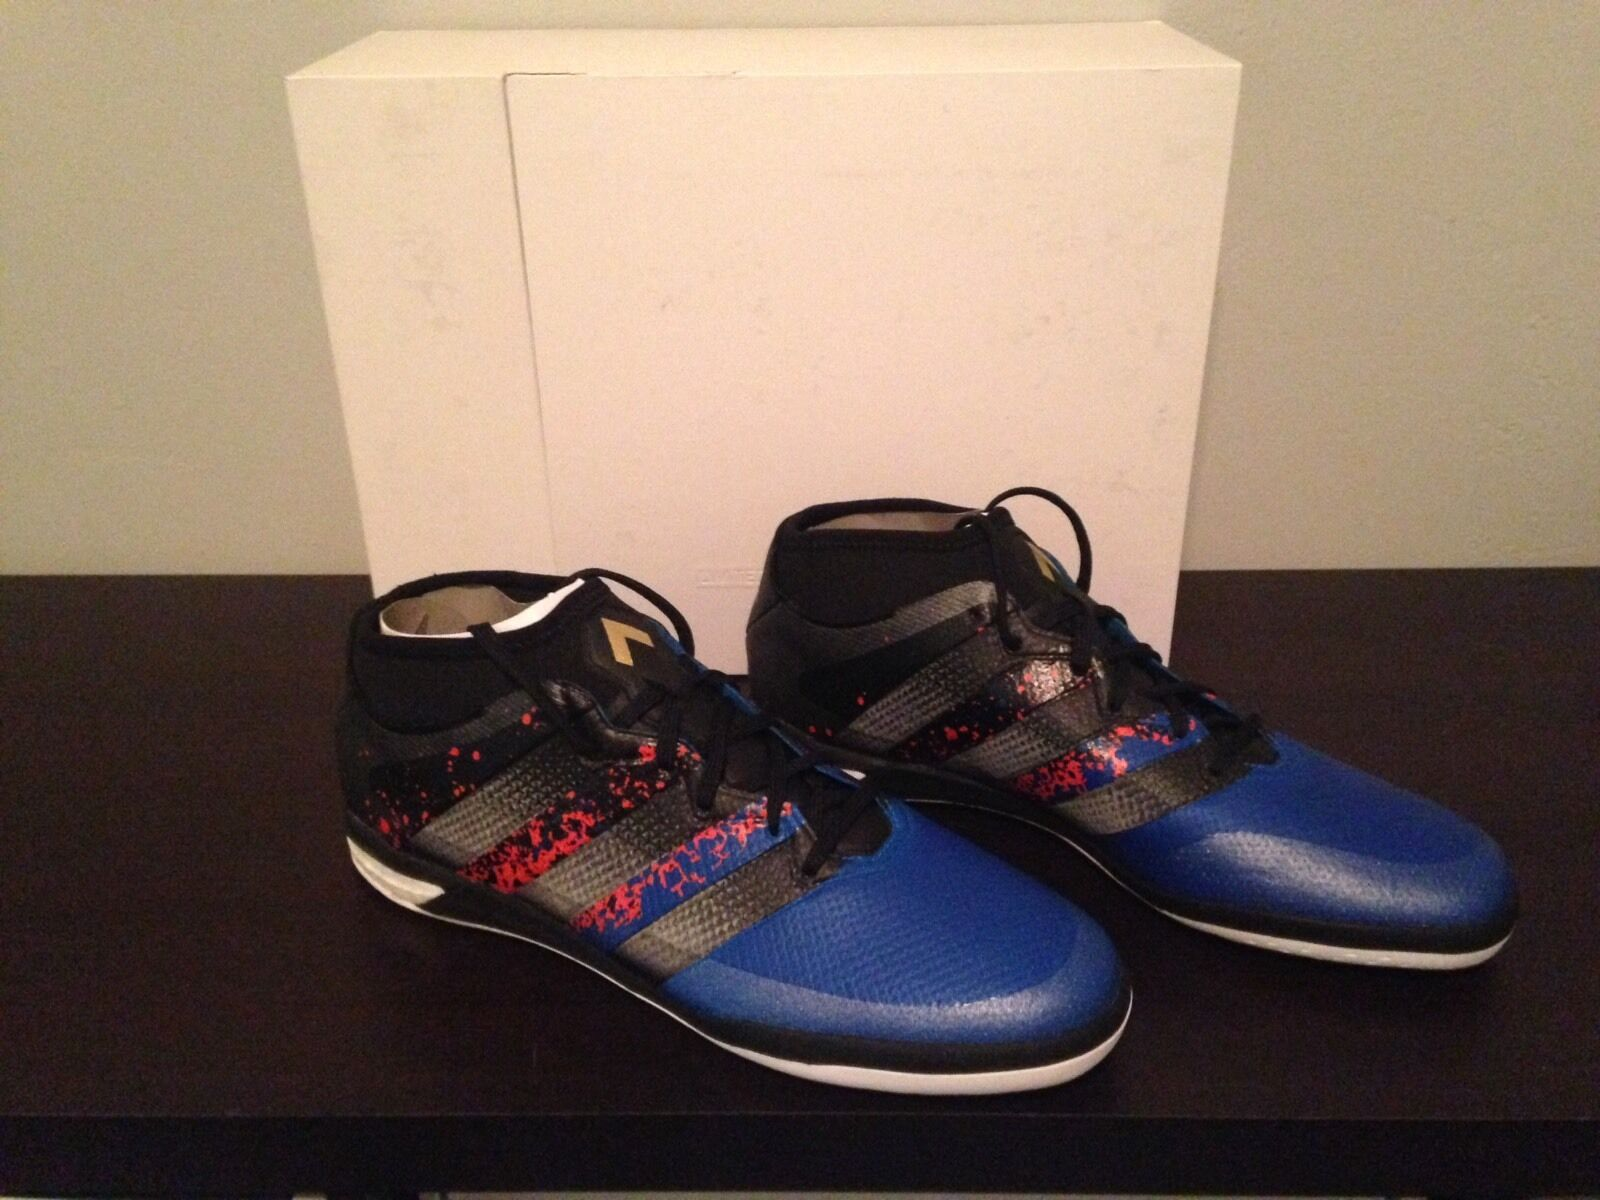 ADIDAS 16.1 ACE STREET PARIS PACK SIZE 10 BB4259 INDOOR LIMITED EDITION